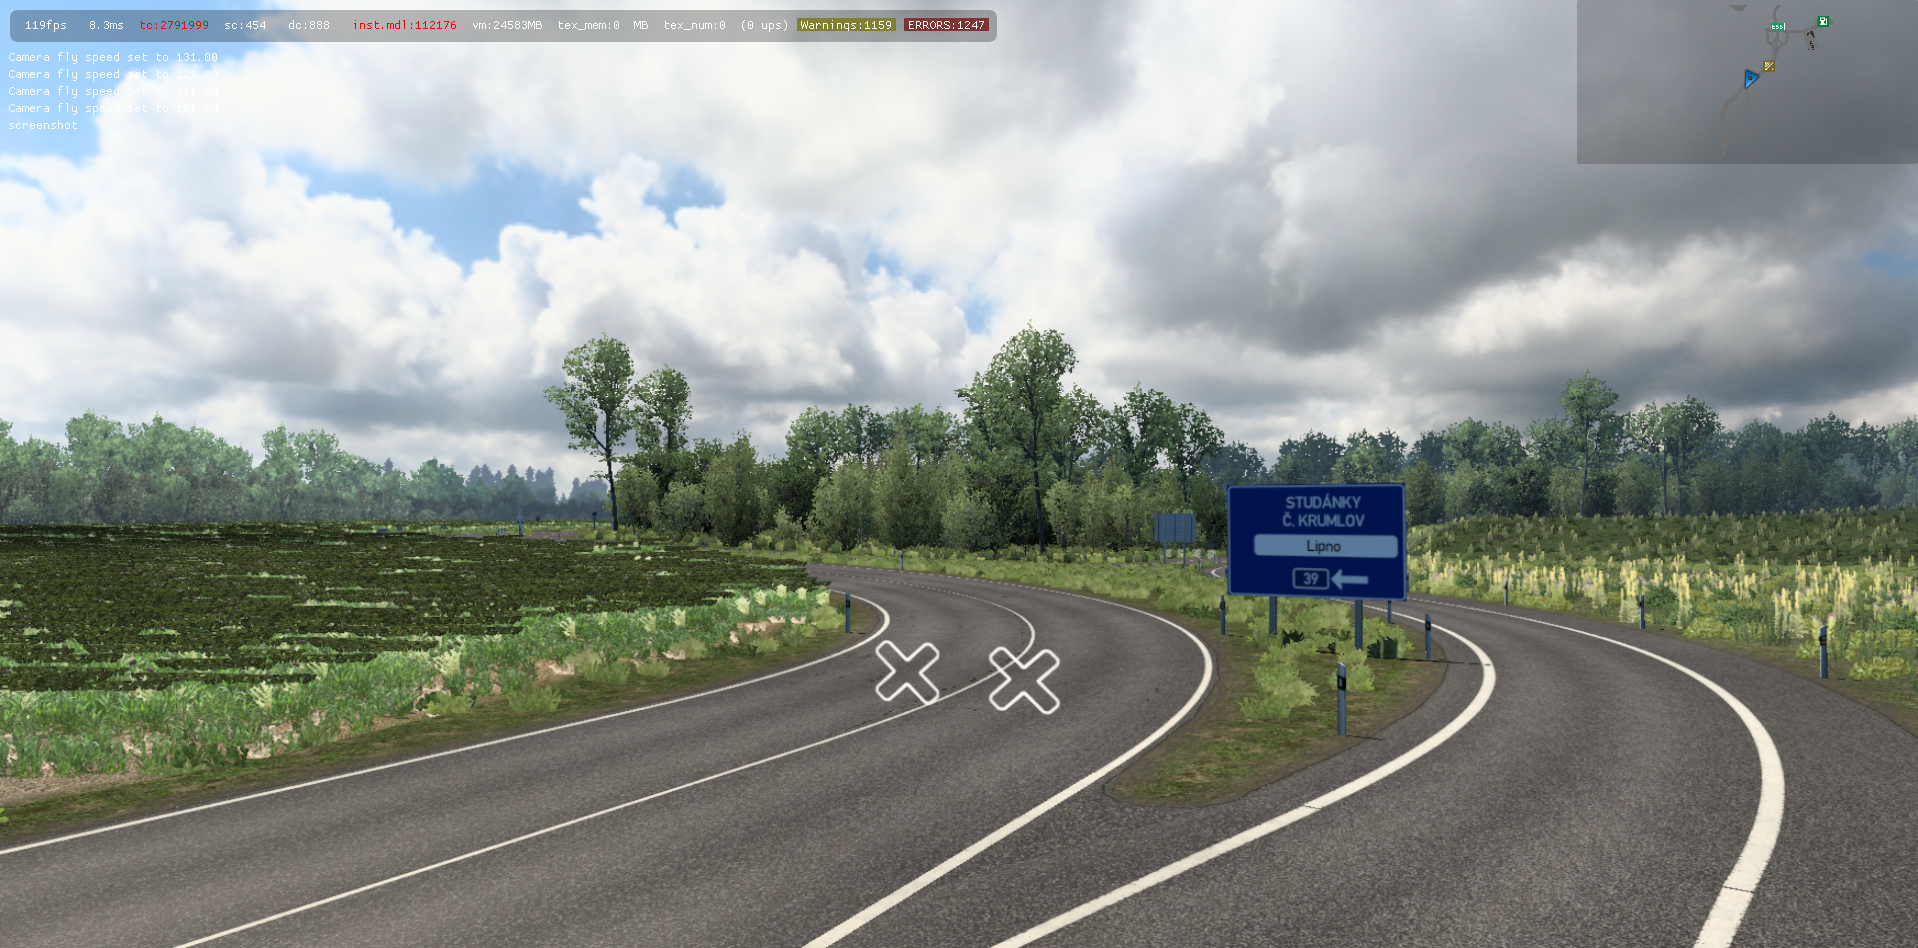 ets2_20210822_203348_00.png